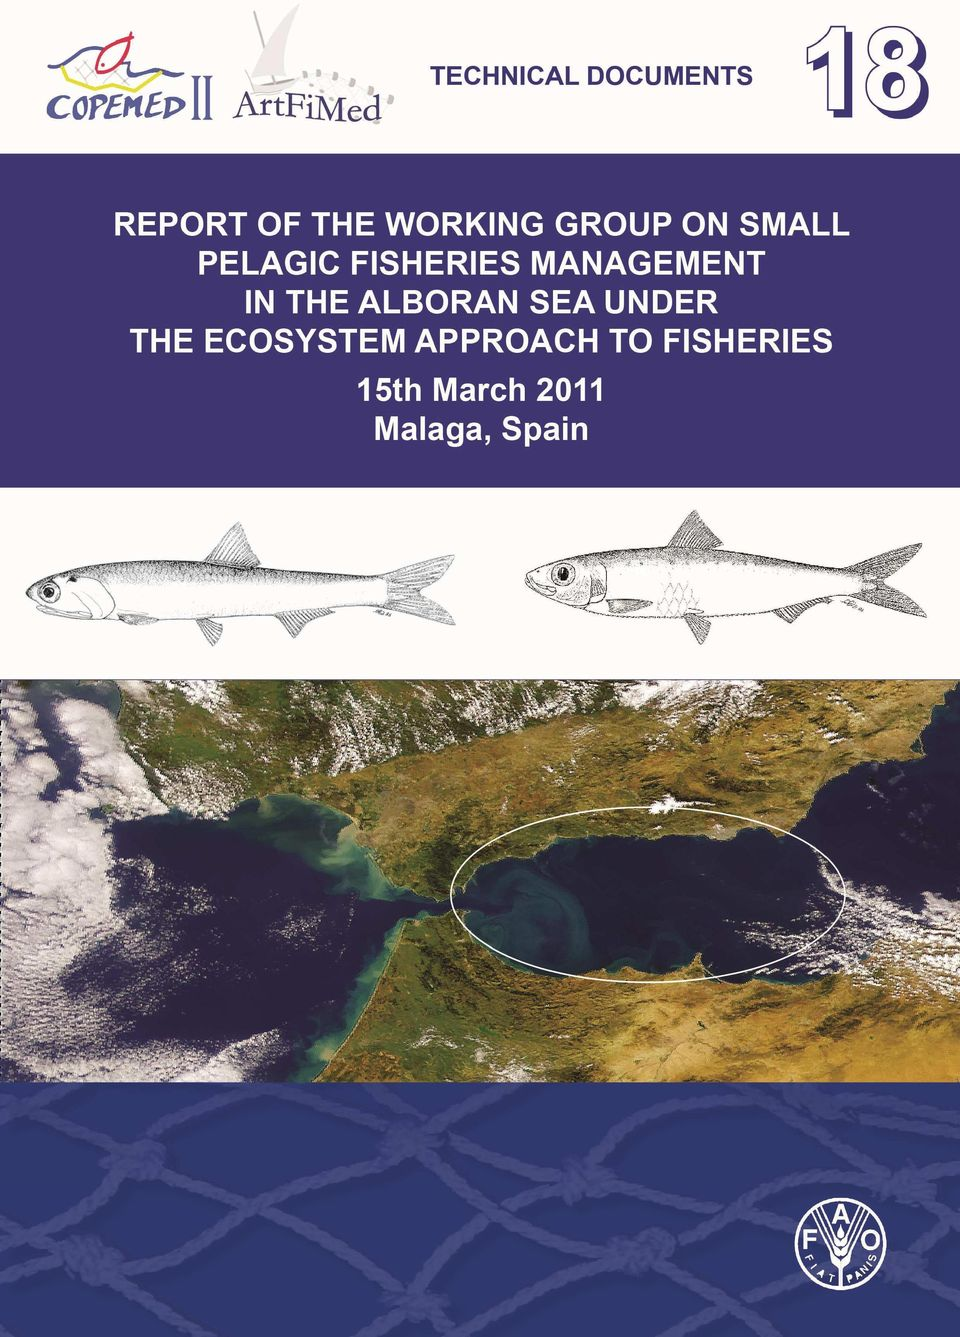 GROUP ON SMALL PELAGIC FISHERIES MANAGEMENT IN THE